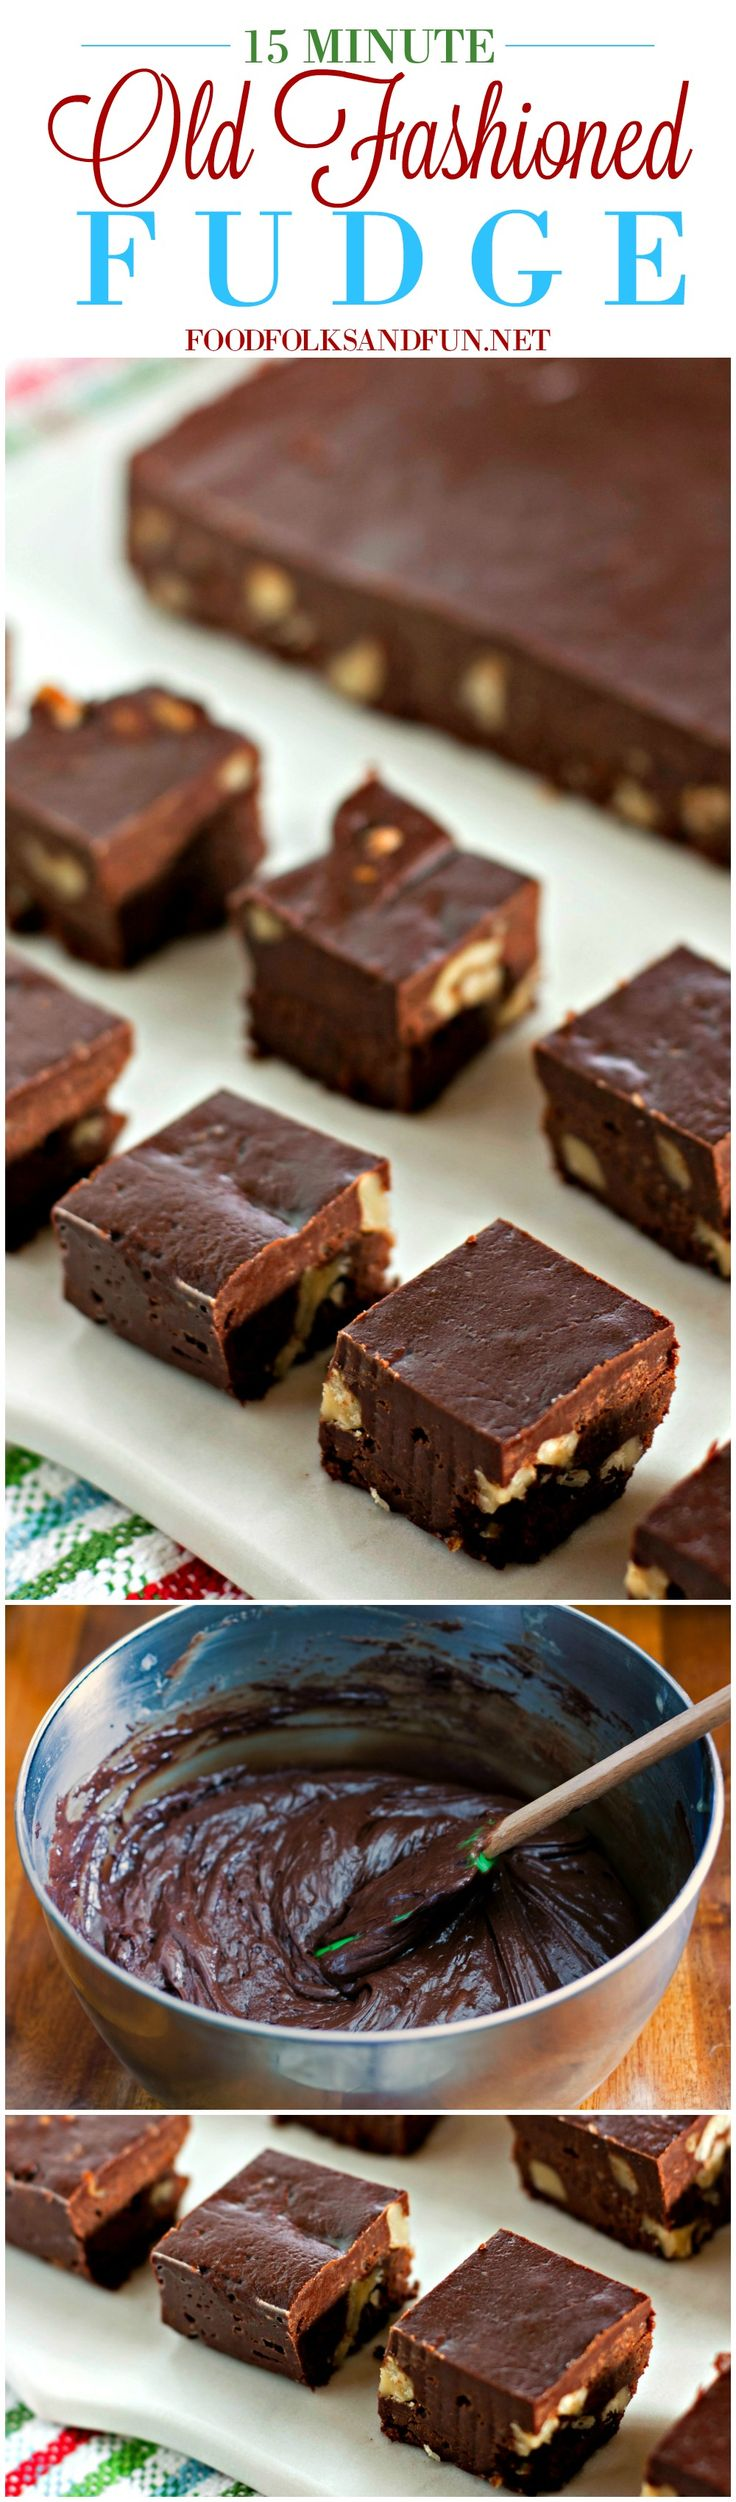 This Old Fashioned Fudge is the best fudge I've ever tasted and you only need 15 minutes of active prep time to make it! | Never Fail Fudge | Chocolate Walnut Fudge | Fudge Recipe | Christmas Recipe | Christmas Candy